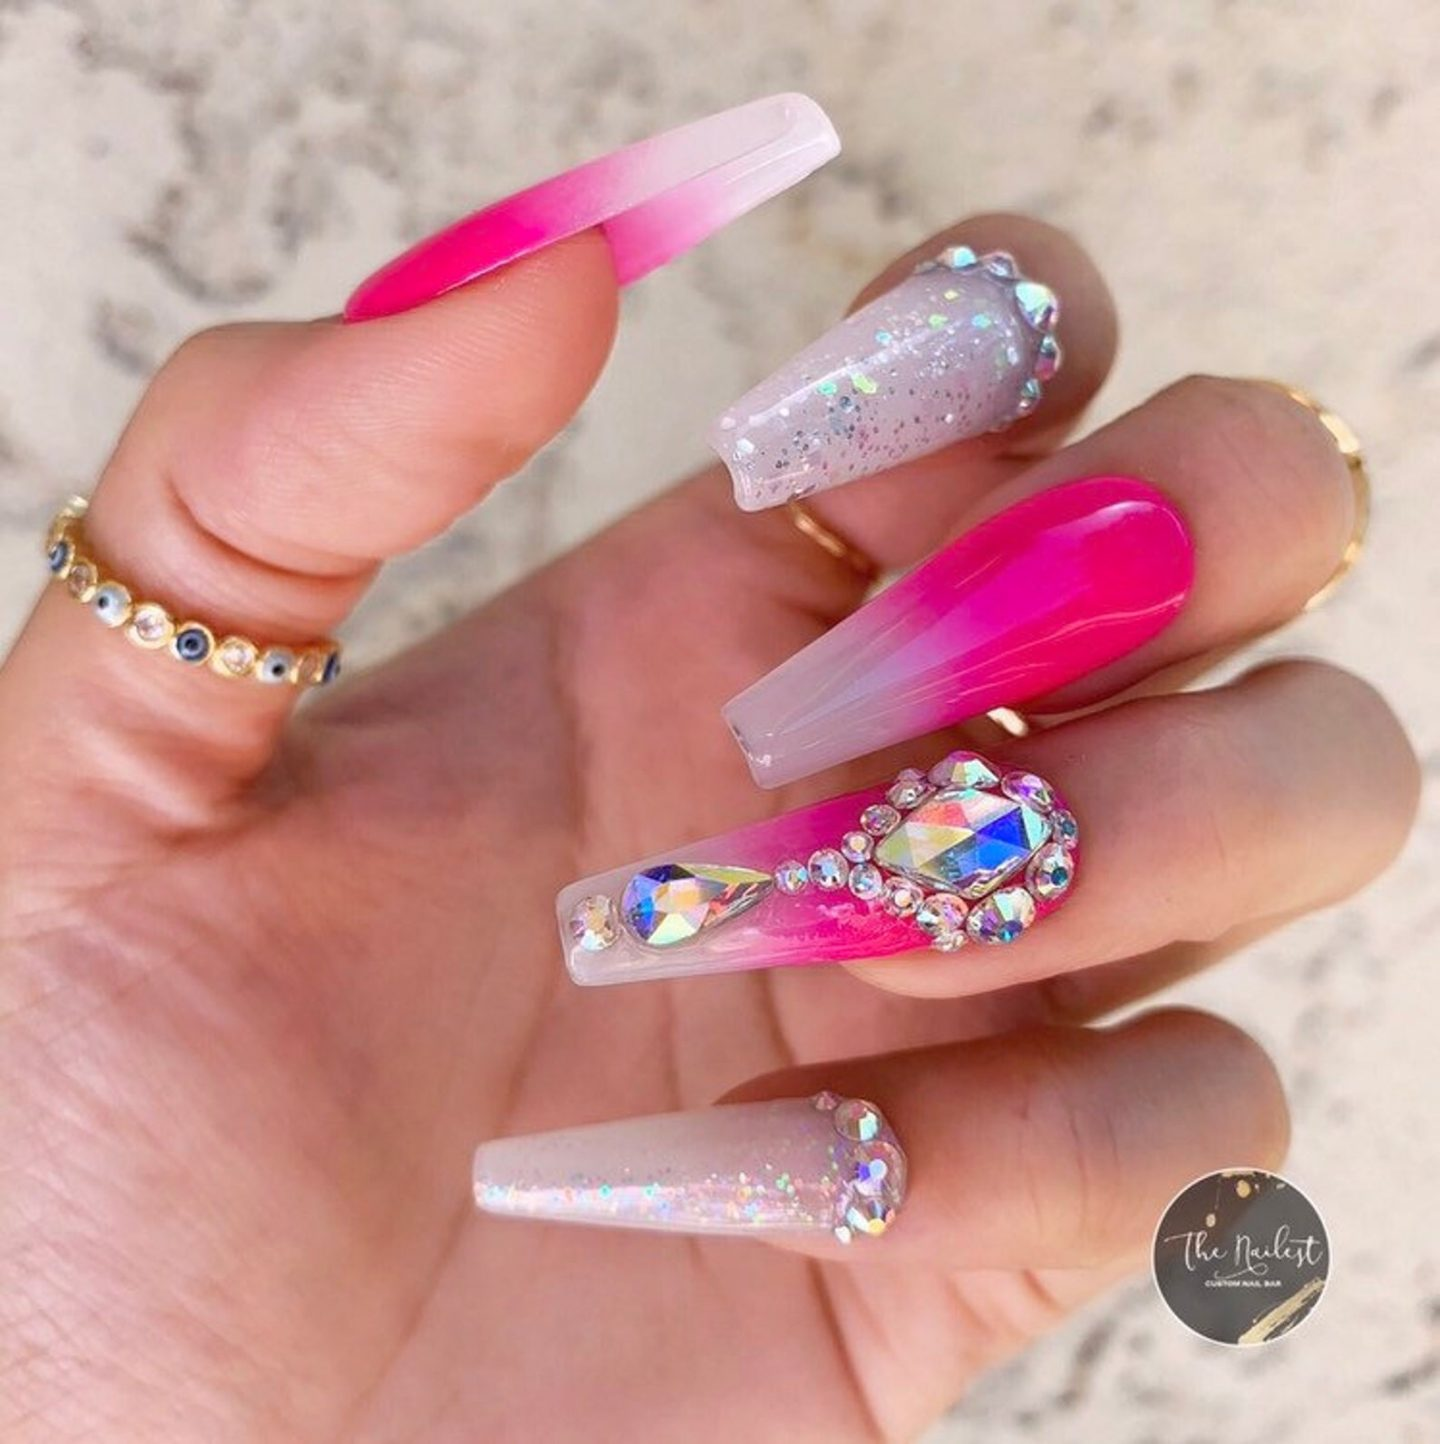 White and hot pink ombre nails with glitter and rhinestones